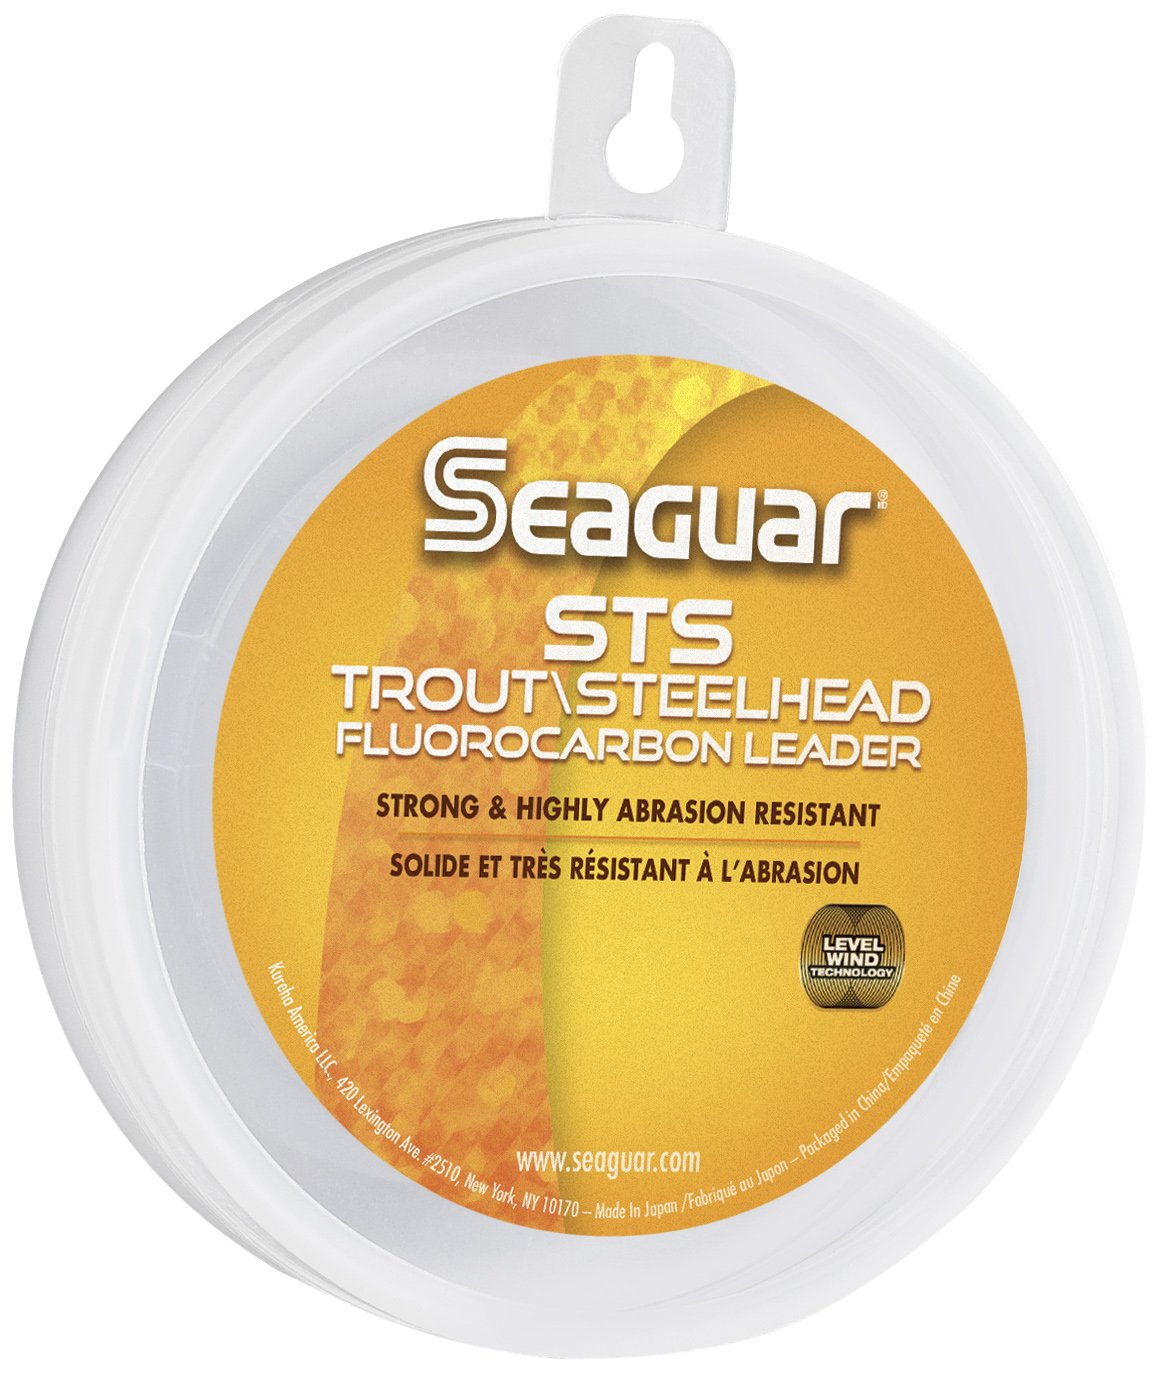 Best fluorocarbon fishing line for trout